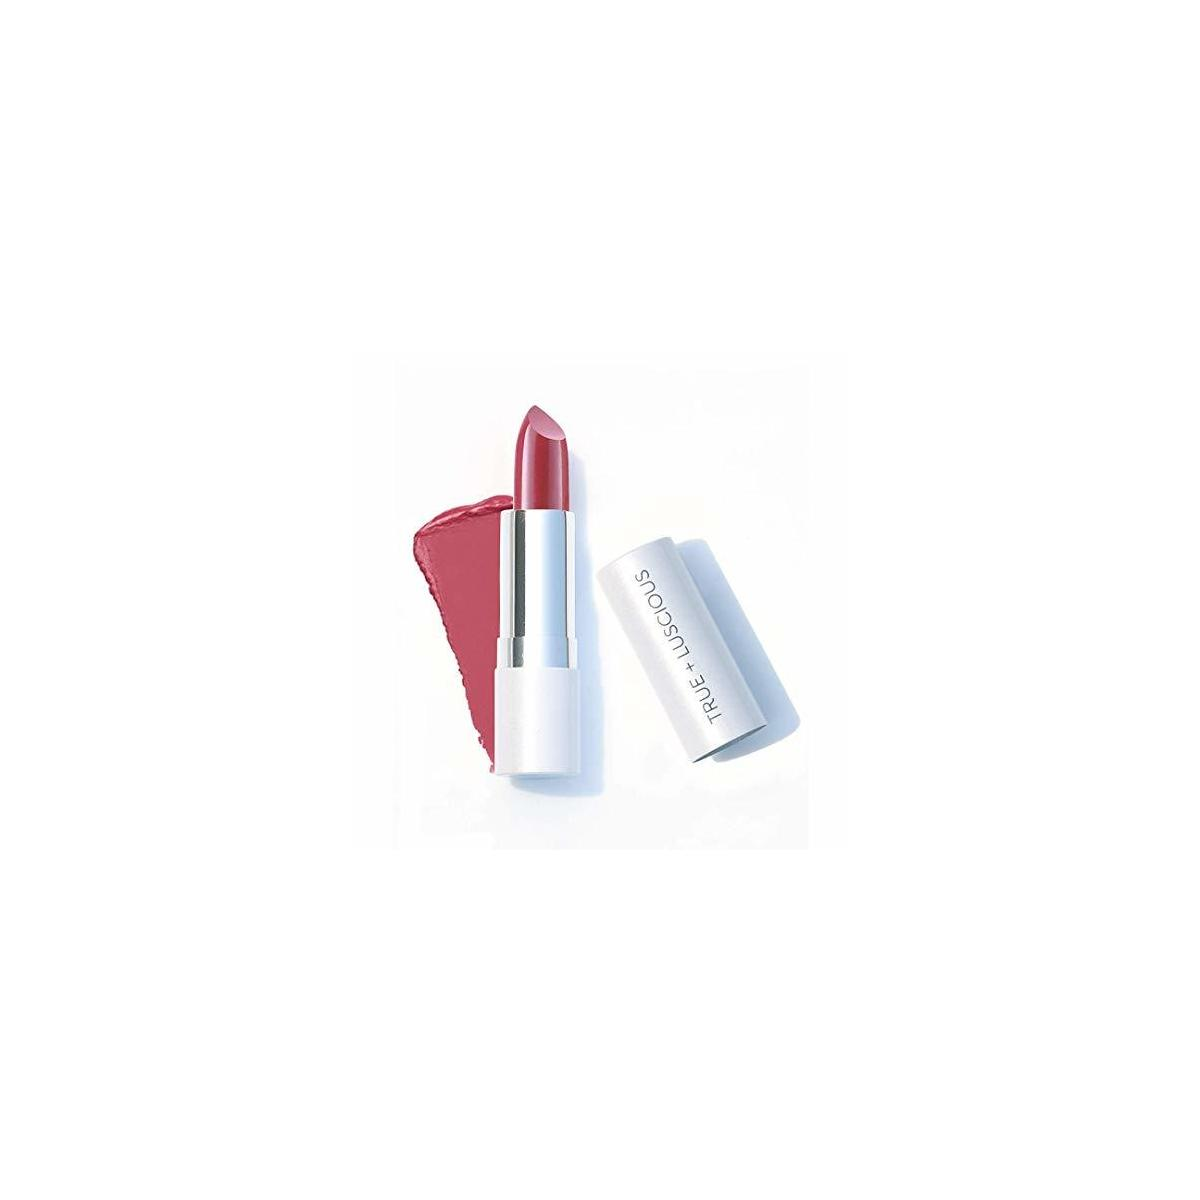 Super Moisture Lipstick by True + Luscious - Clean Formula, Smooth and Hydrating - Vegan and Cruelty Free Lipstick, Non Toxic and Lead Free Shade: Creamy Rose - 0.12 oz